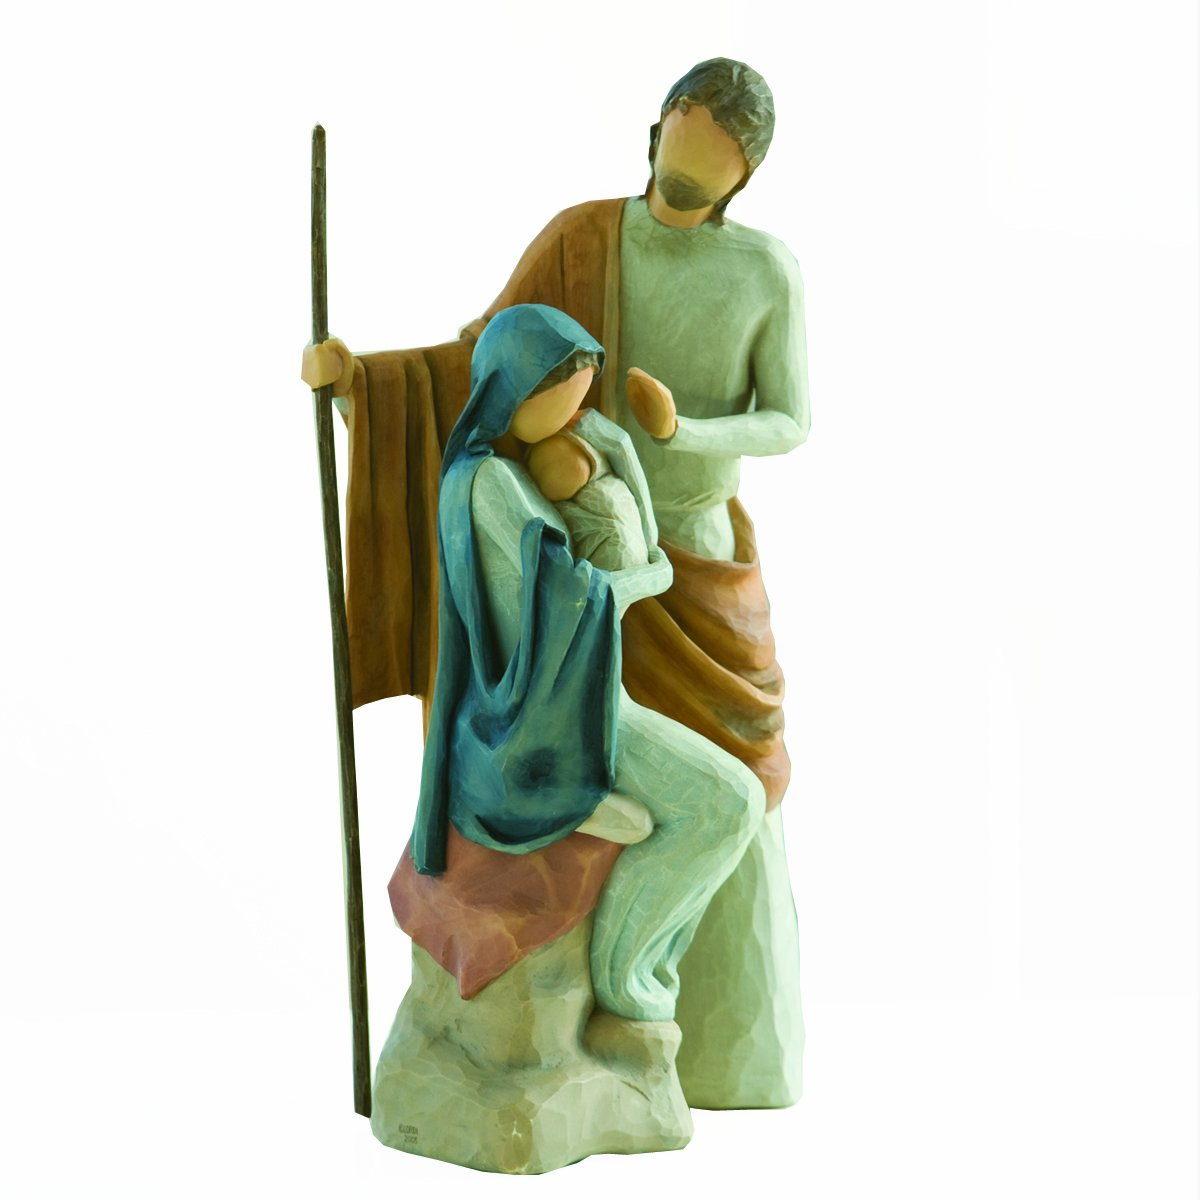 Amazon.com: The Christmas Story Figurines By Willow Tree: Susan ...